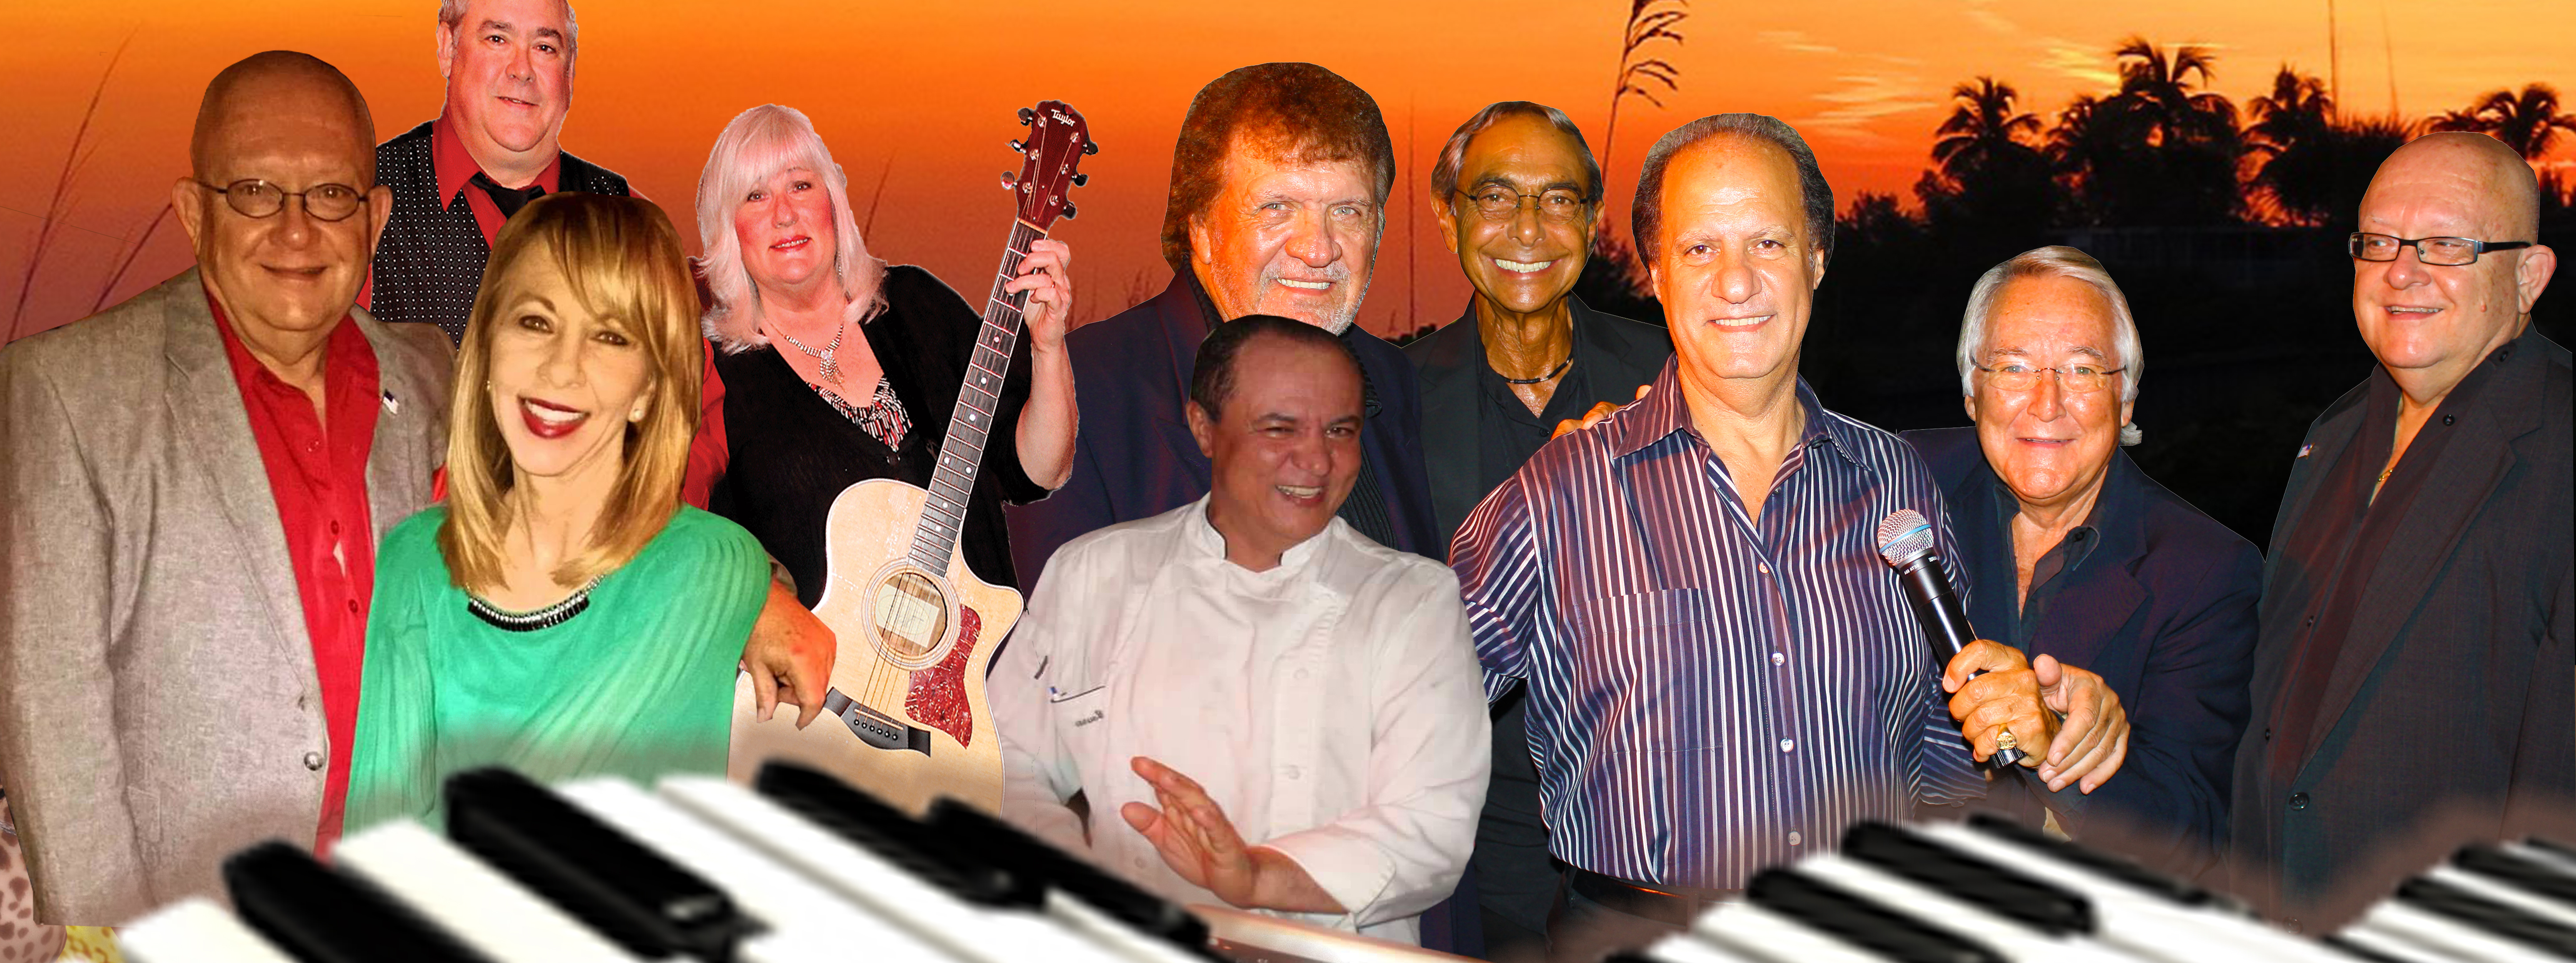 Entertainment Lineup at Traditions on the Beach